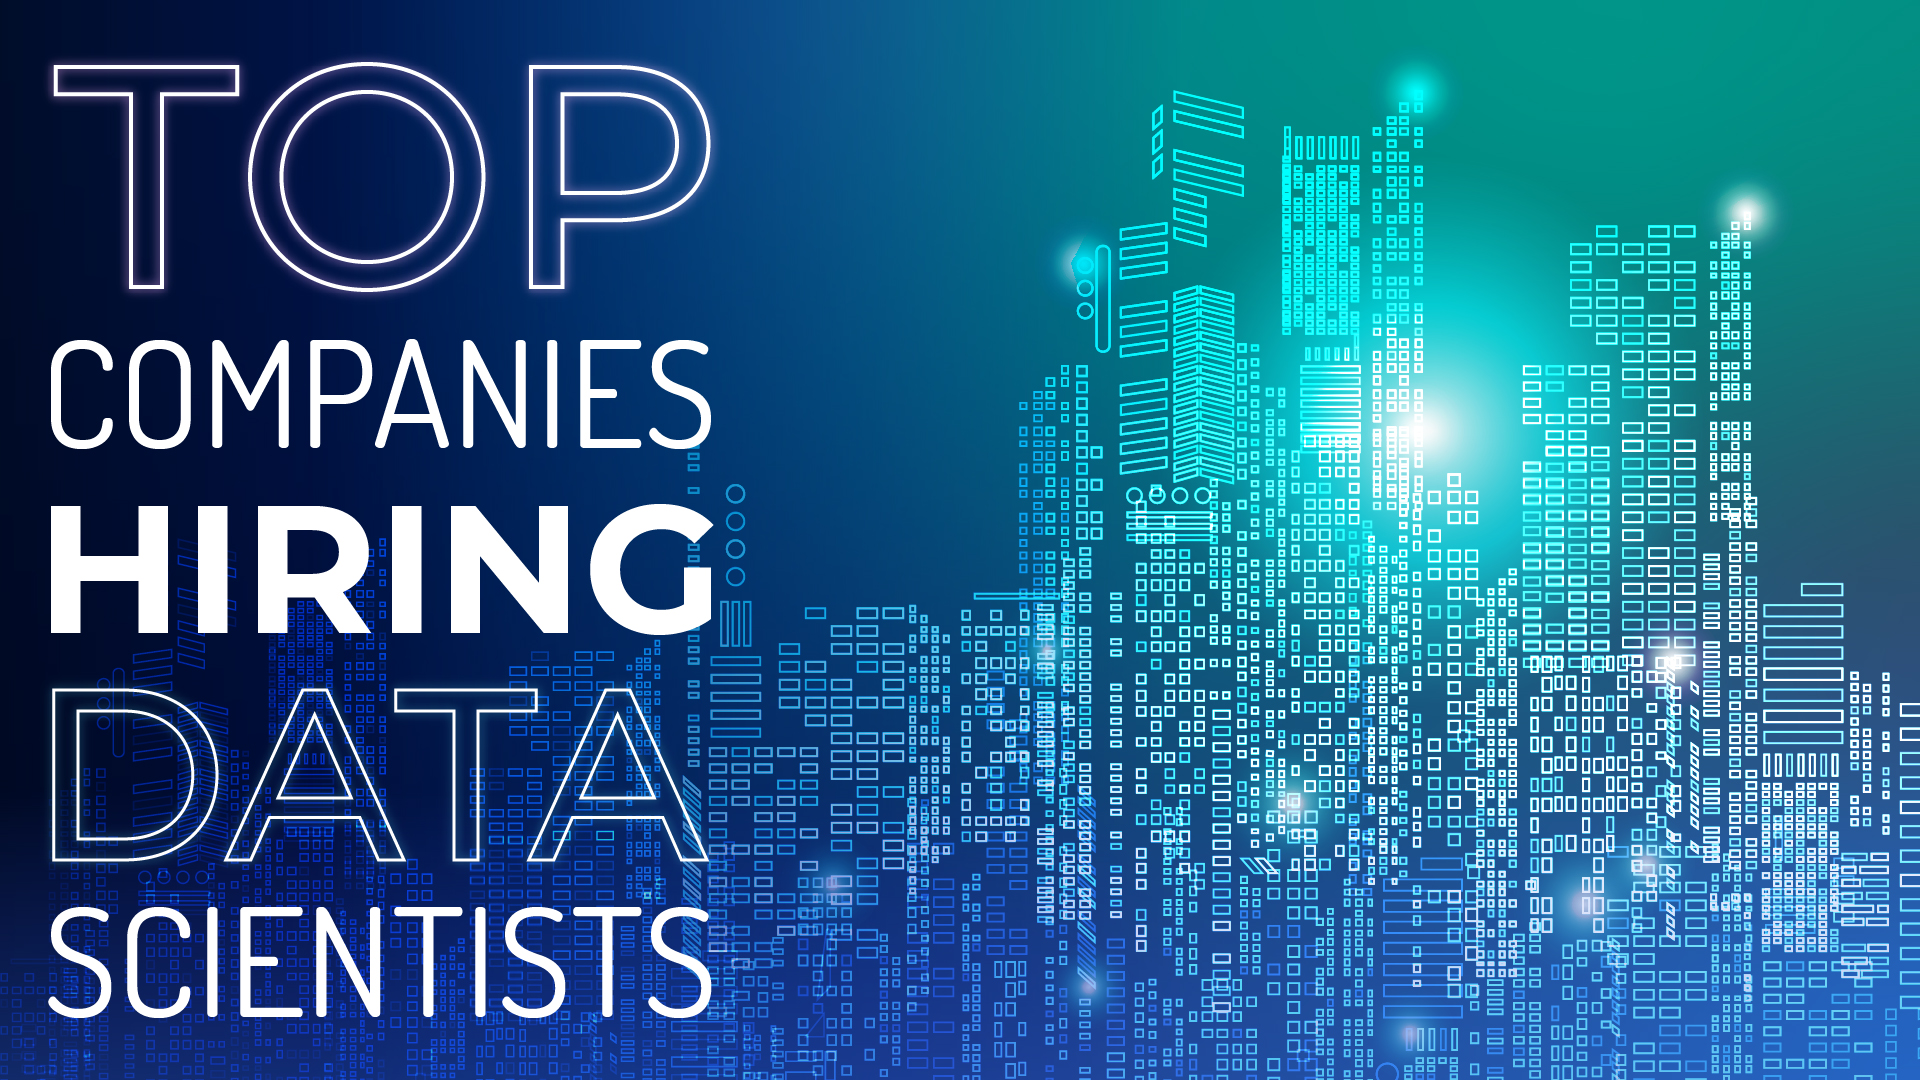 data science consulting companies hiring now